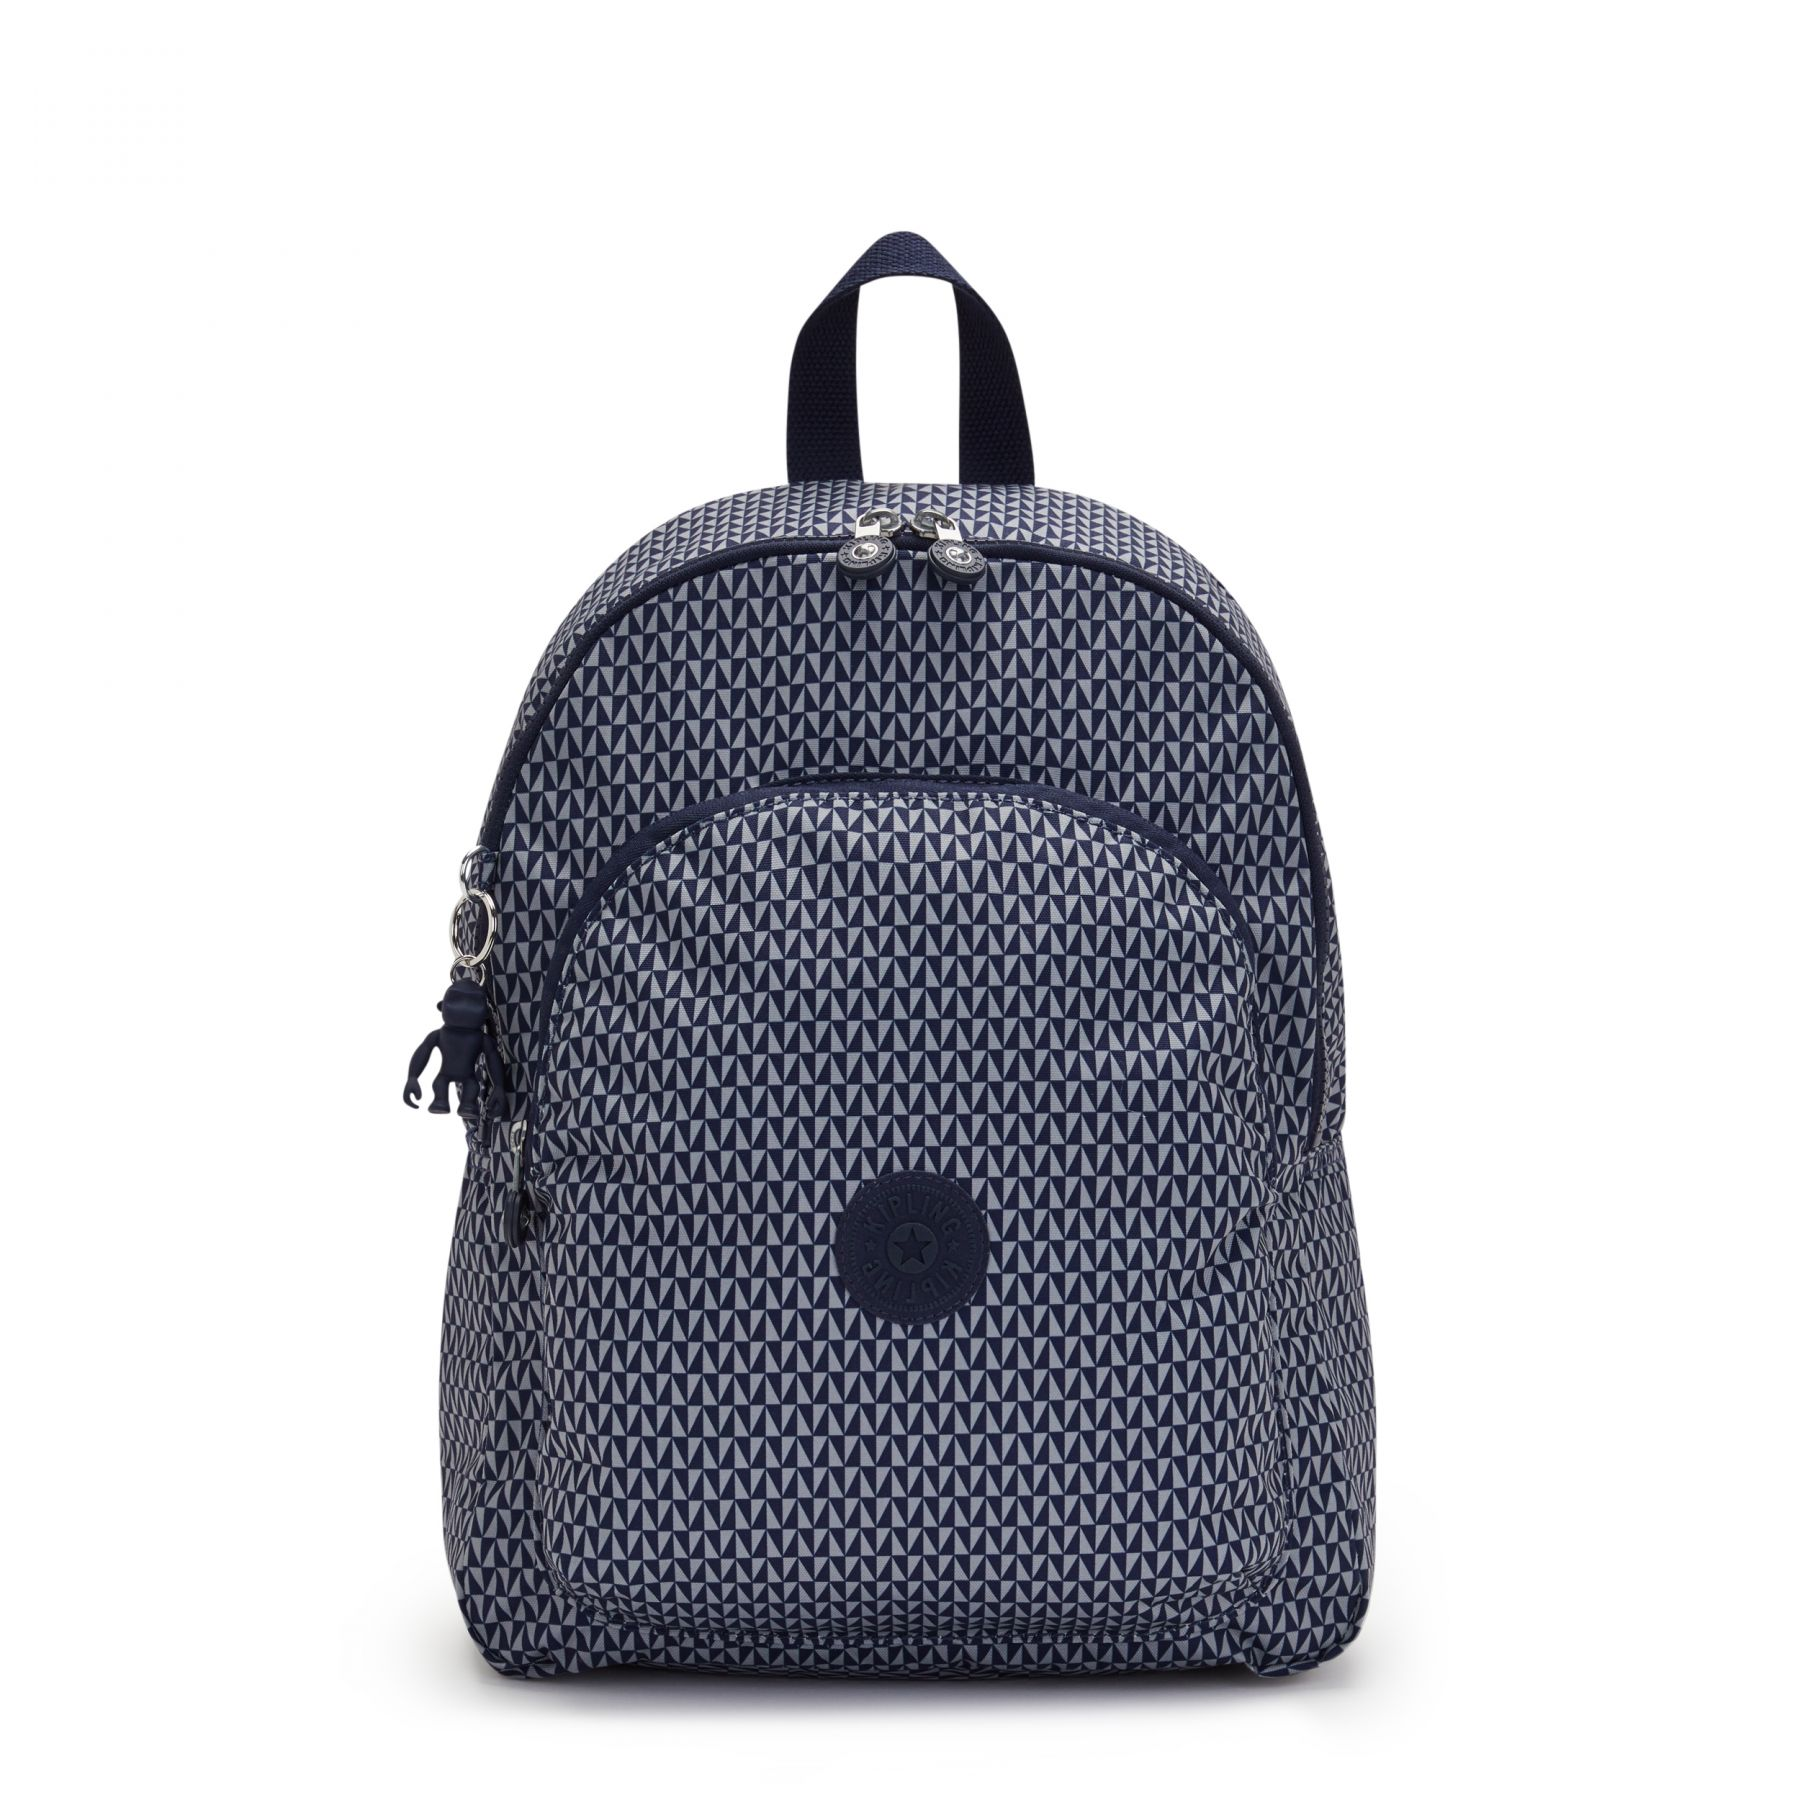 CURTIS M SCHOOL BAGS by Kipling - Front view